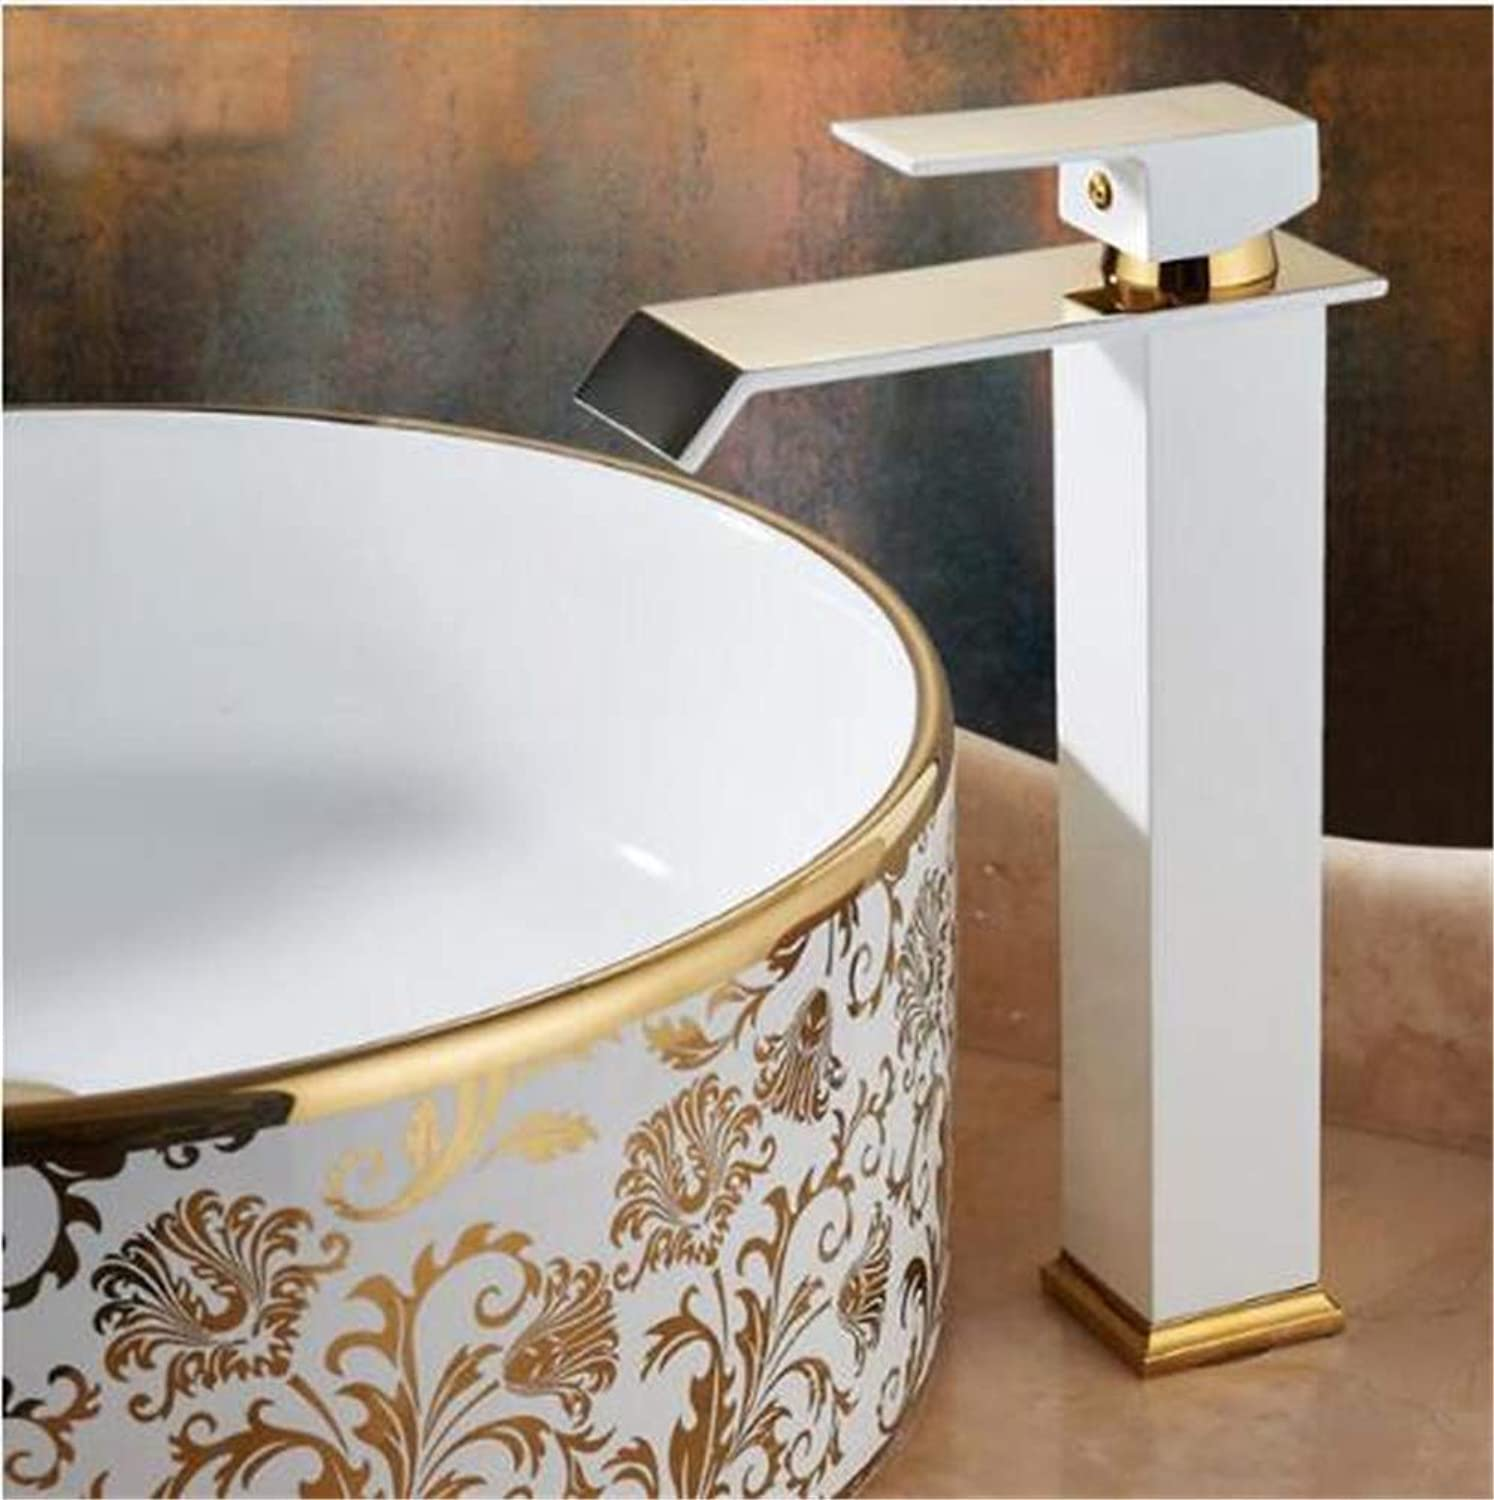 Decorry gold and White color Waterfall Faucet Tall Bathroom Faucet Bathroom Basin Faucet Mixer Tap Hot and Cold Sink Faucet,B